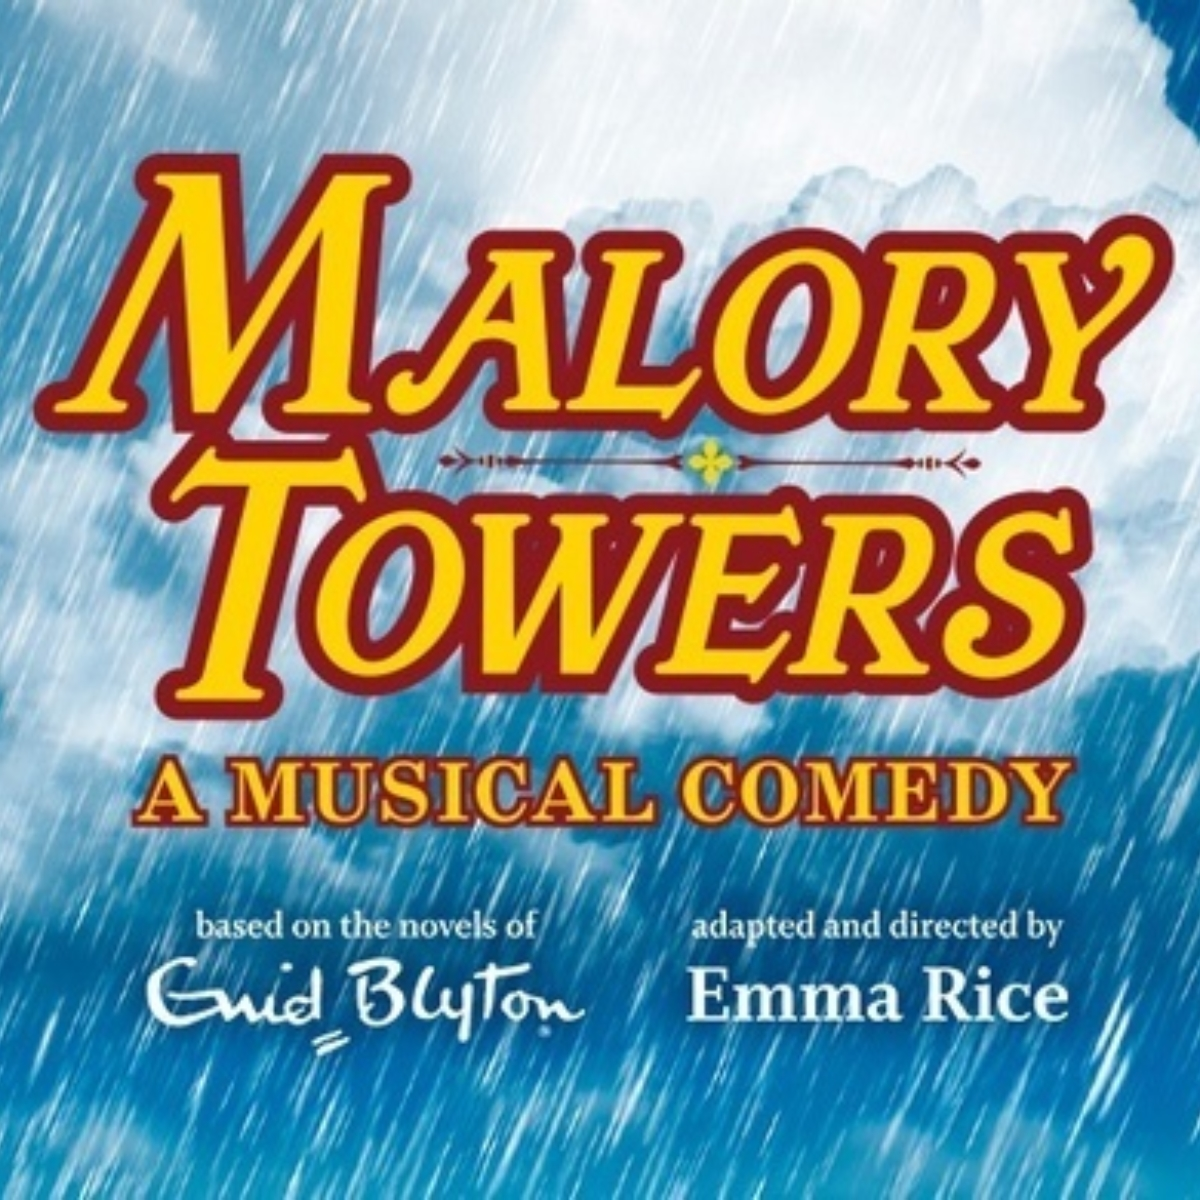 Malory Towers Images